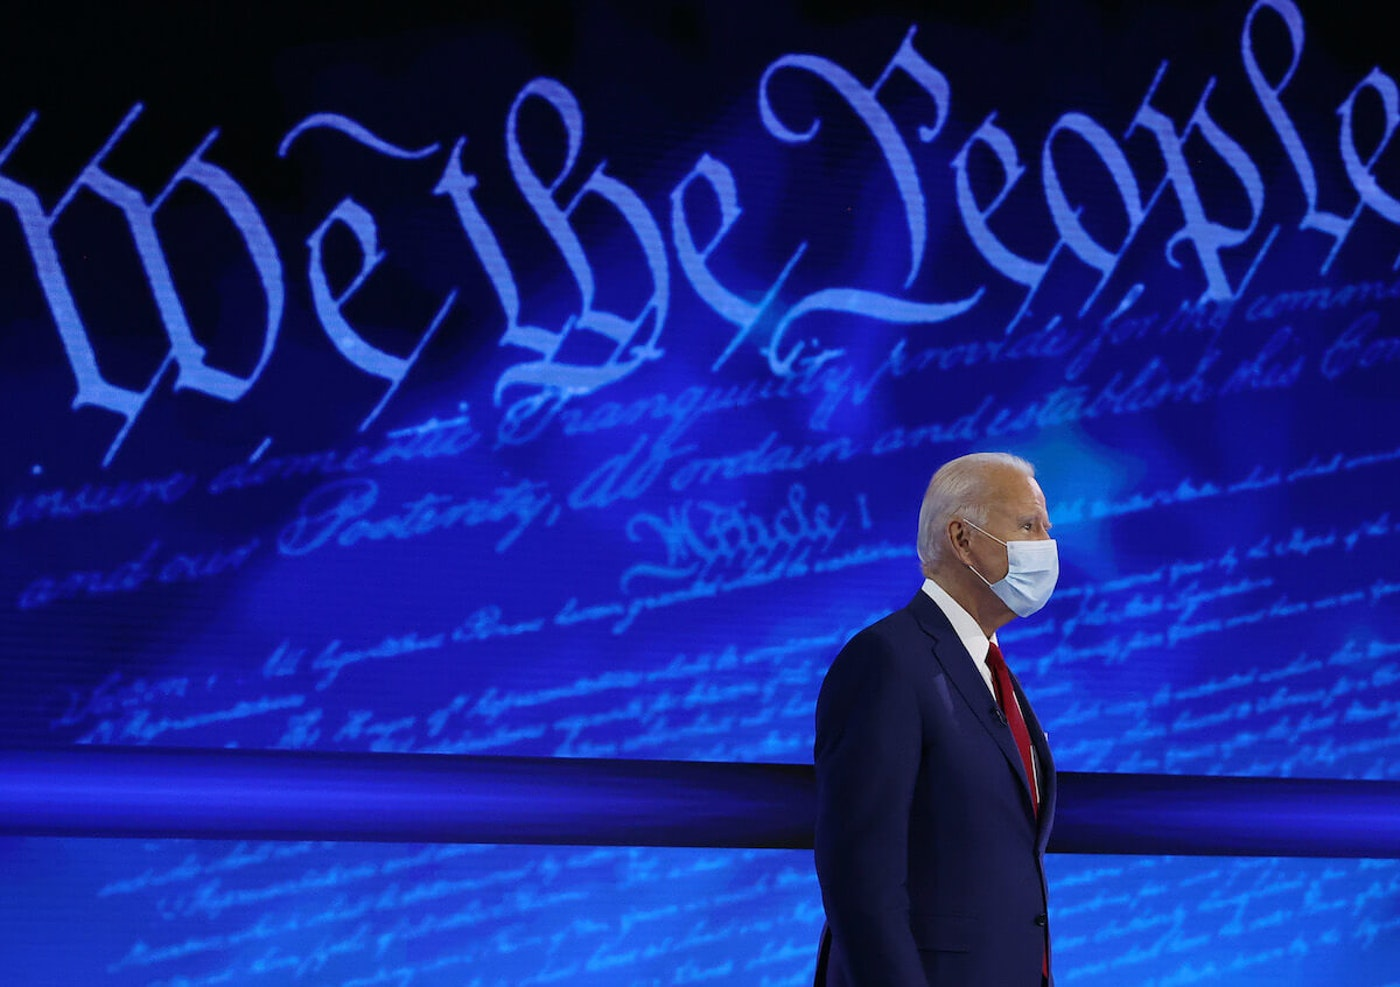 Democratic presidential nominee Joe Biden participates in a Town Hall format meeting with ABC News Chief Anchor George Stephanopoulos at the National Constitution Cent on Oct. 15 in Philadelphia, Pennsylvania. The second presidential debate was originally scheduled for that night but was cancelled after President Donald Trump refused to participate in a 'virtual' debate after he tested positive for the coronavirus and was hospitalized for three days. (Photo by Chip Somodevilla/Getty Images)